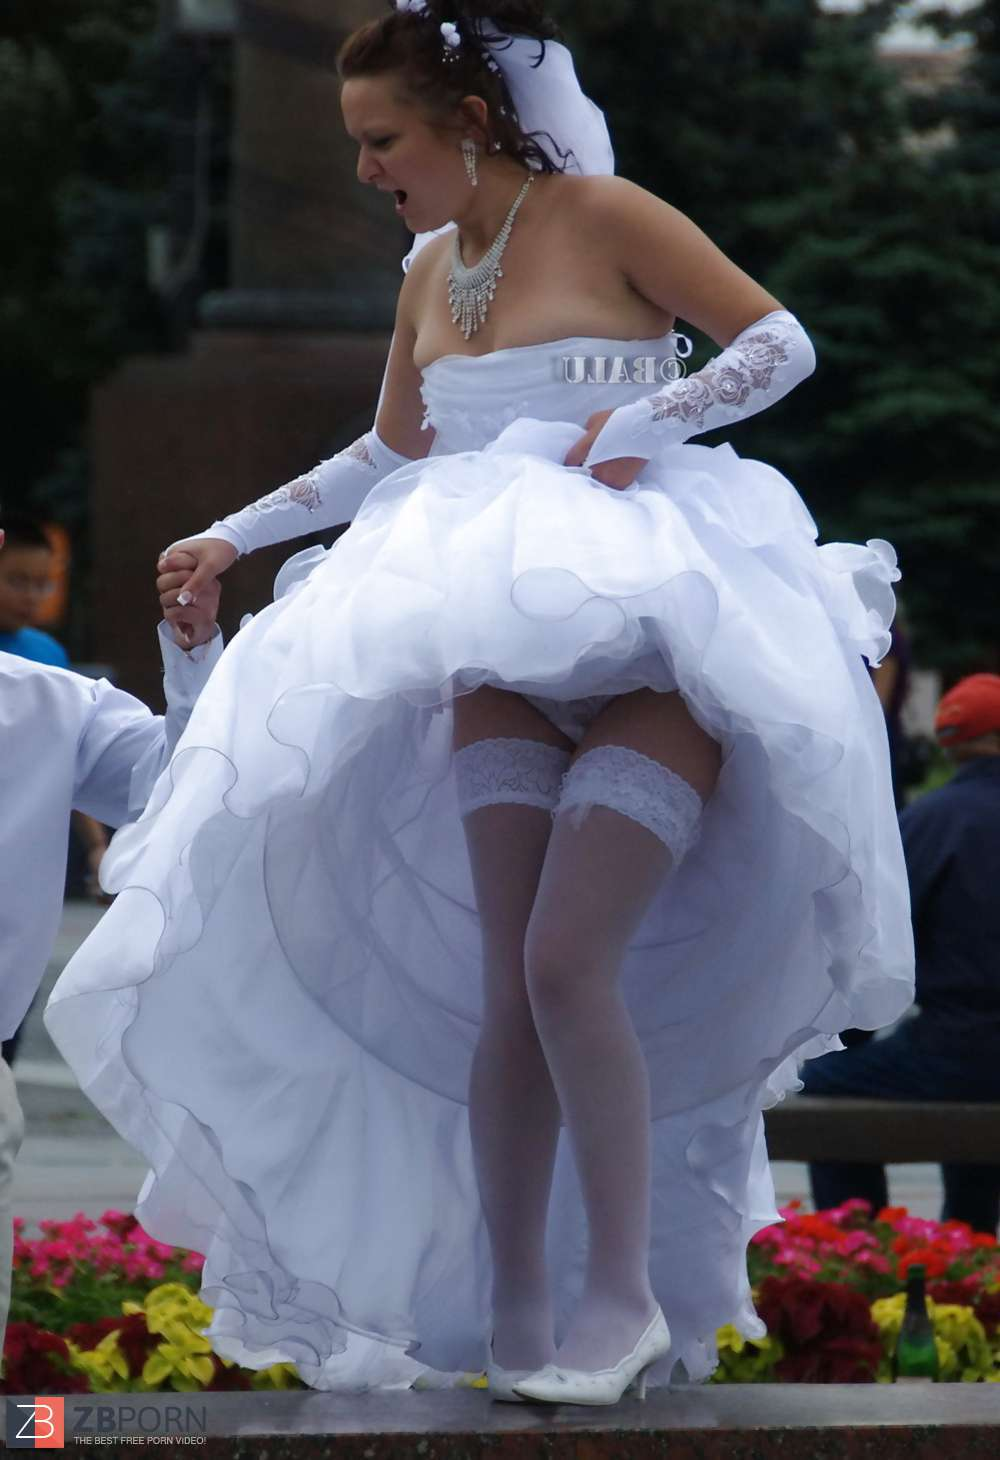 Tackle reccomend Free upskirt wedding pictures